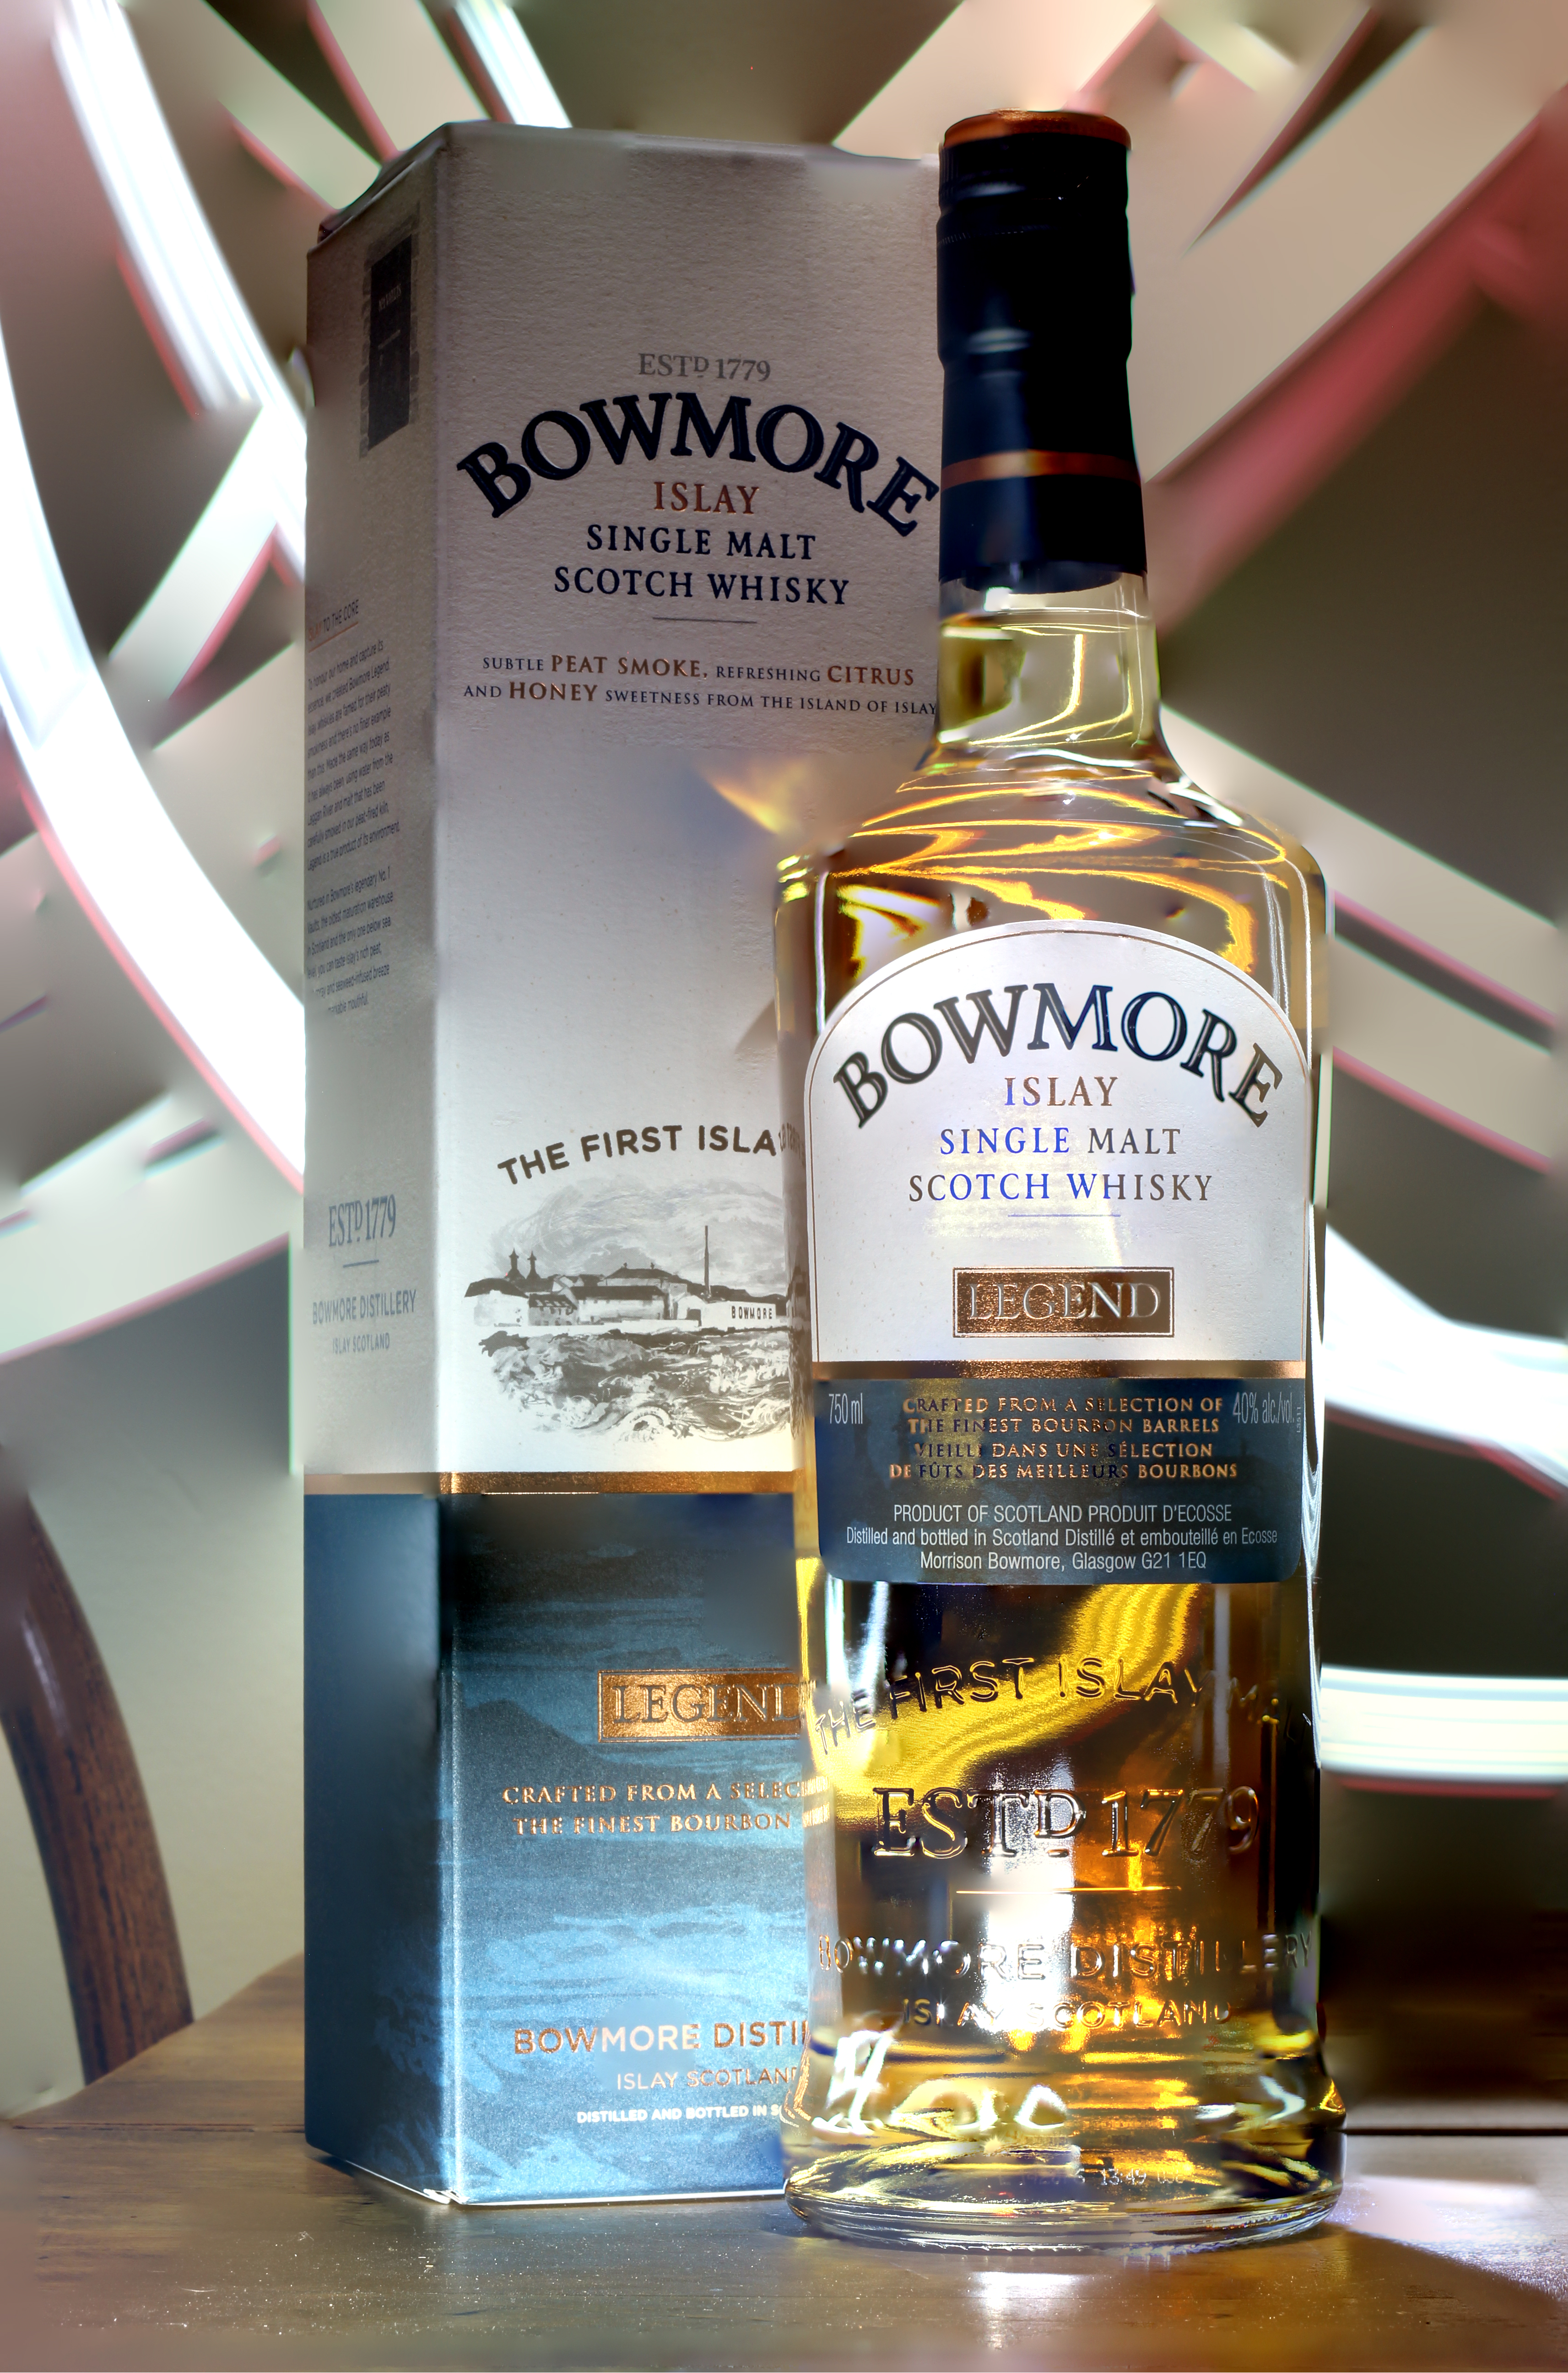 Bowmore Legend with Steve, Goran, Dan & Matt